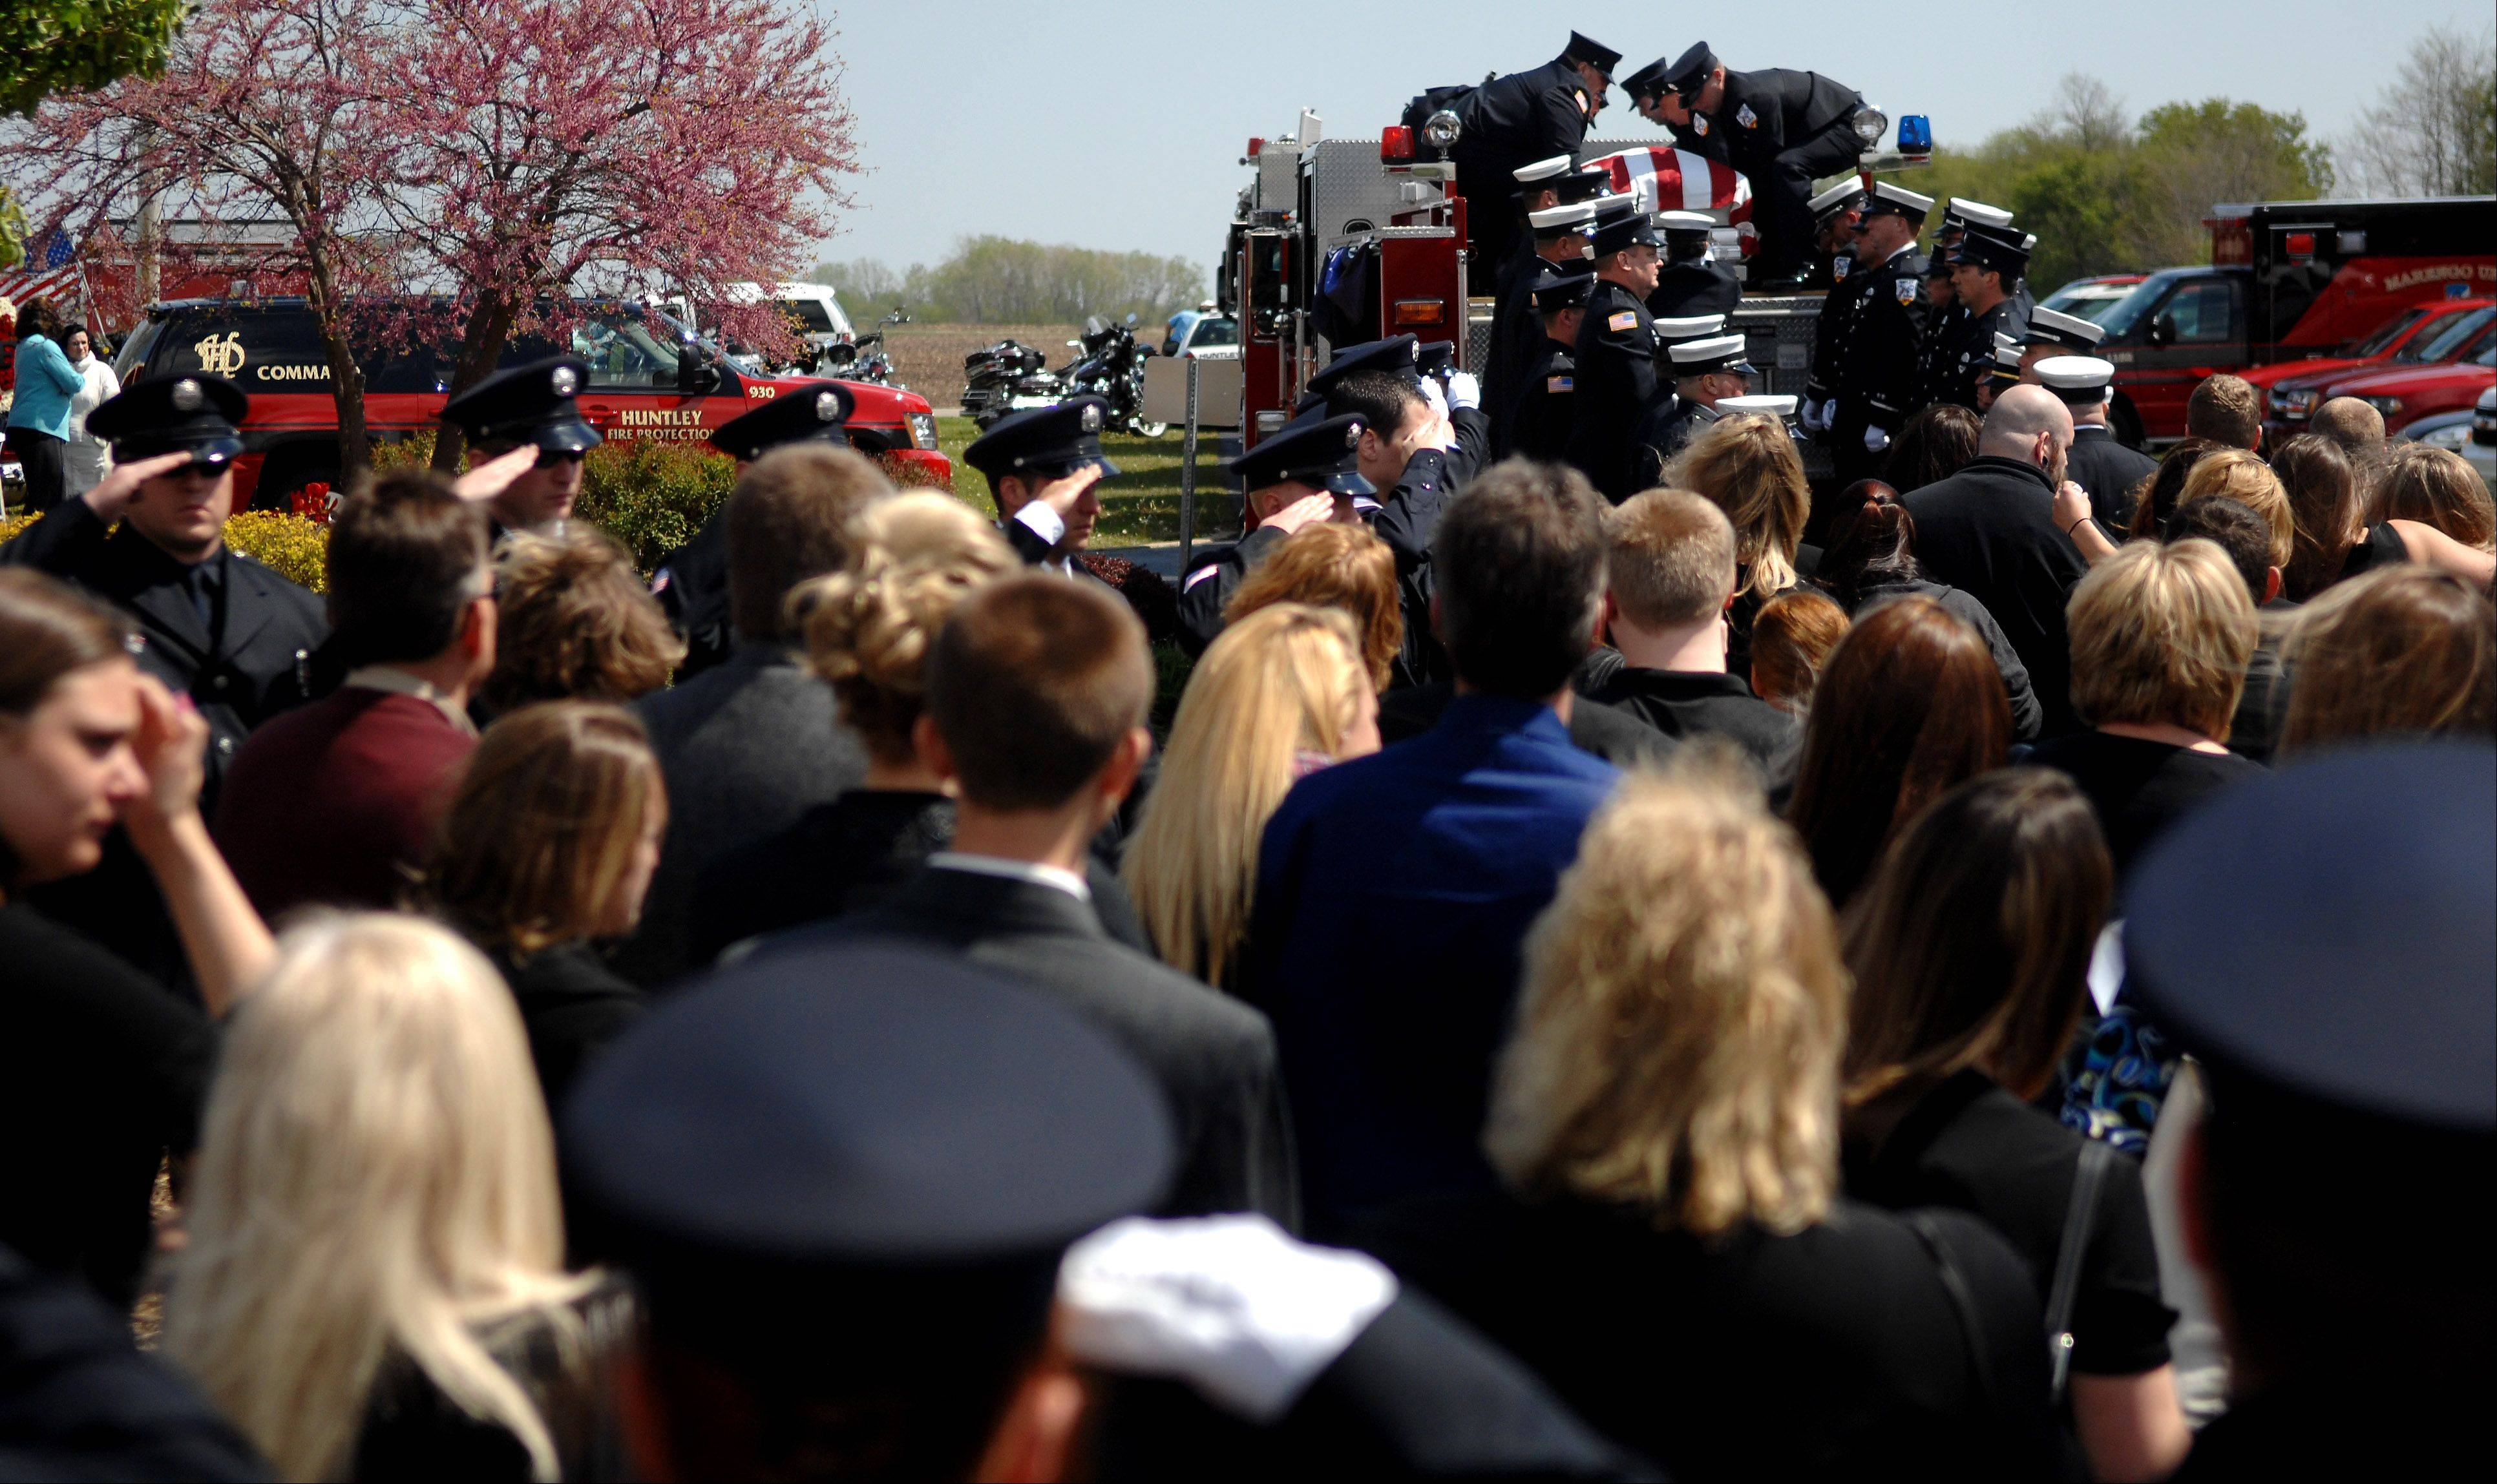 Mourners watch while firefighters secure the casket carrying Capt. John Winkelman onto Huntley Fire Engine #941 at St. John's Lutheran Church in Union. Winkelman, 54, lived in nearby Marengo and was killed last week in a motorcycle accident while on duty. More than 450 turned out for his funeral and five people eulogized him.